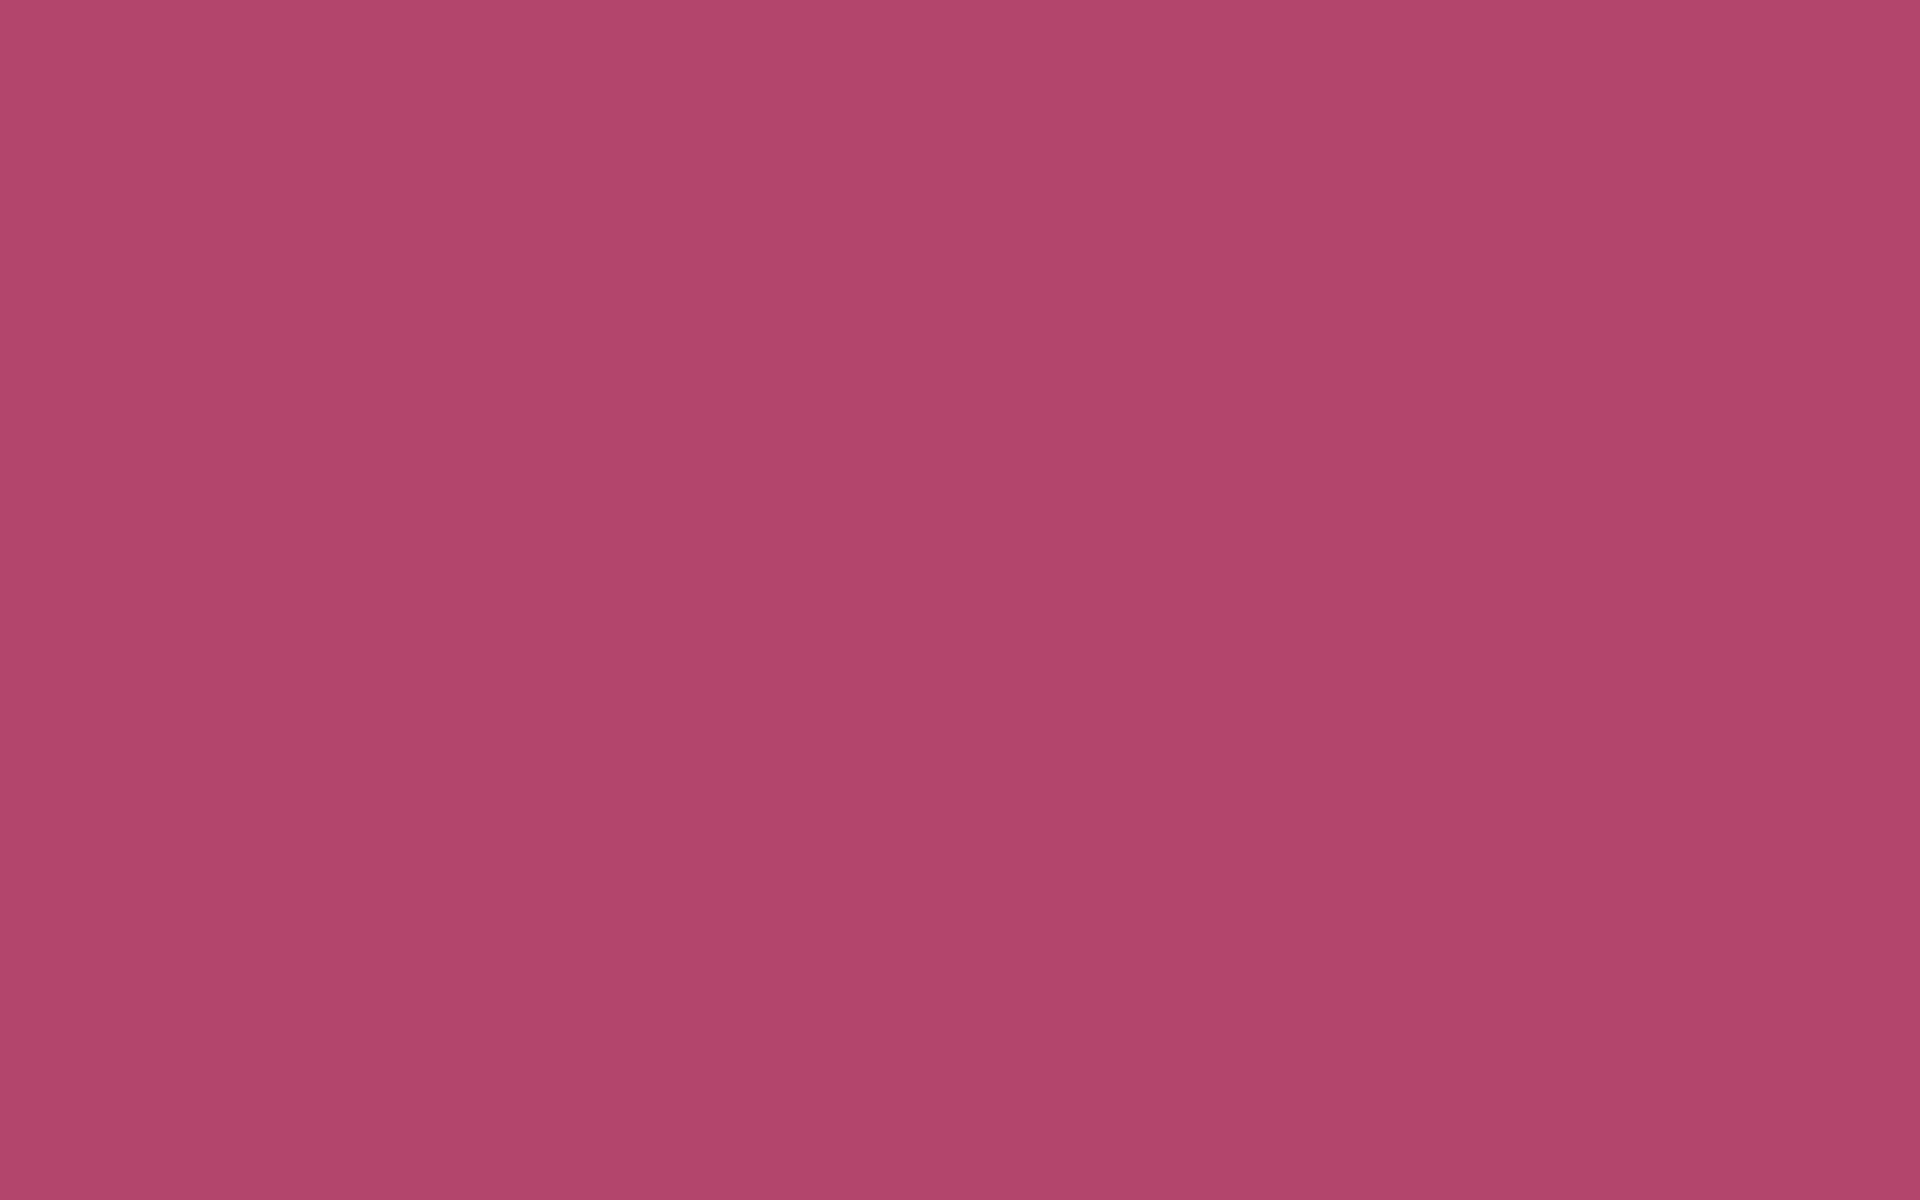 1920x1200 Raspberry Rose Solid Color Background